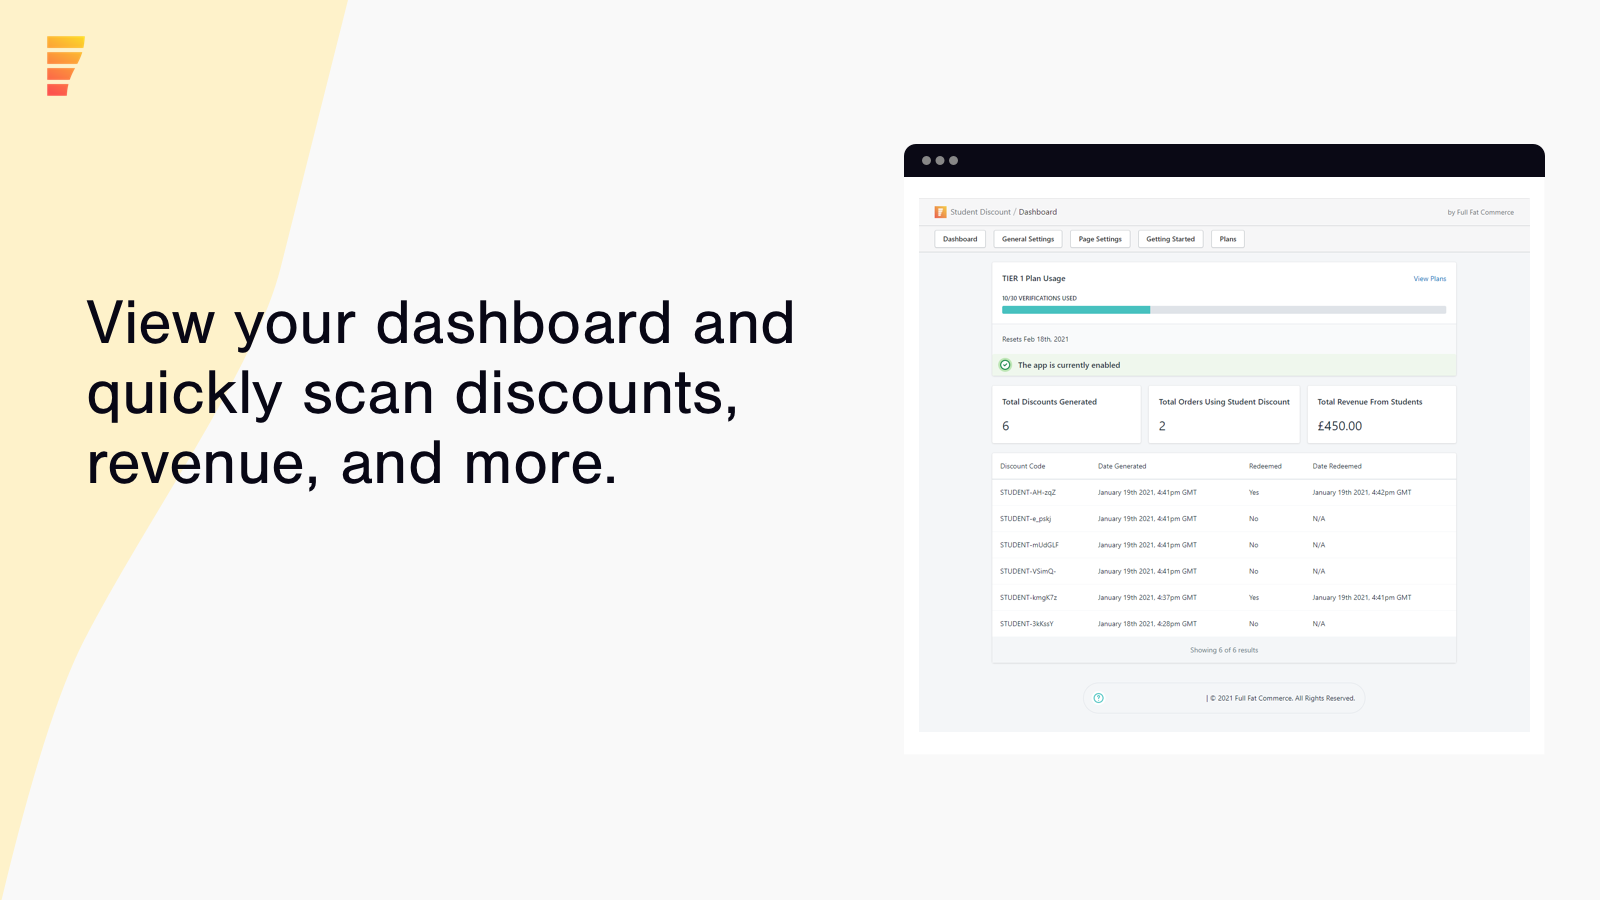 View your dashboard and quickly see discounts, revenue, and more